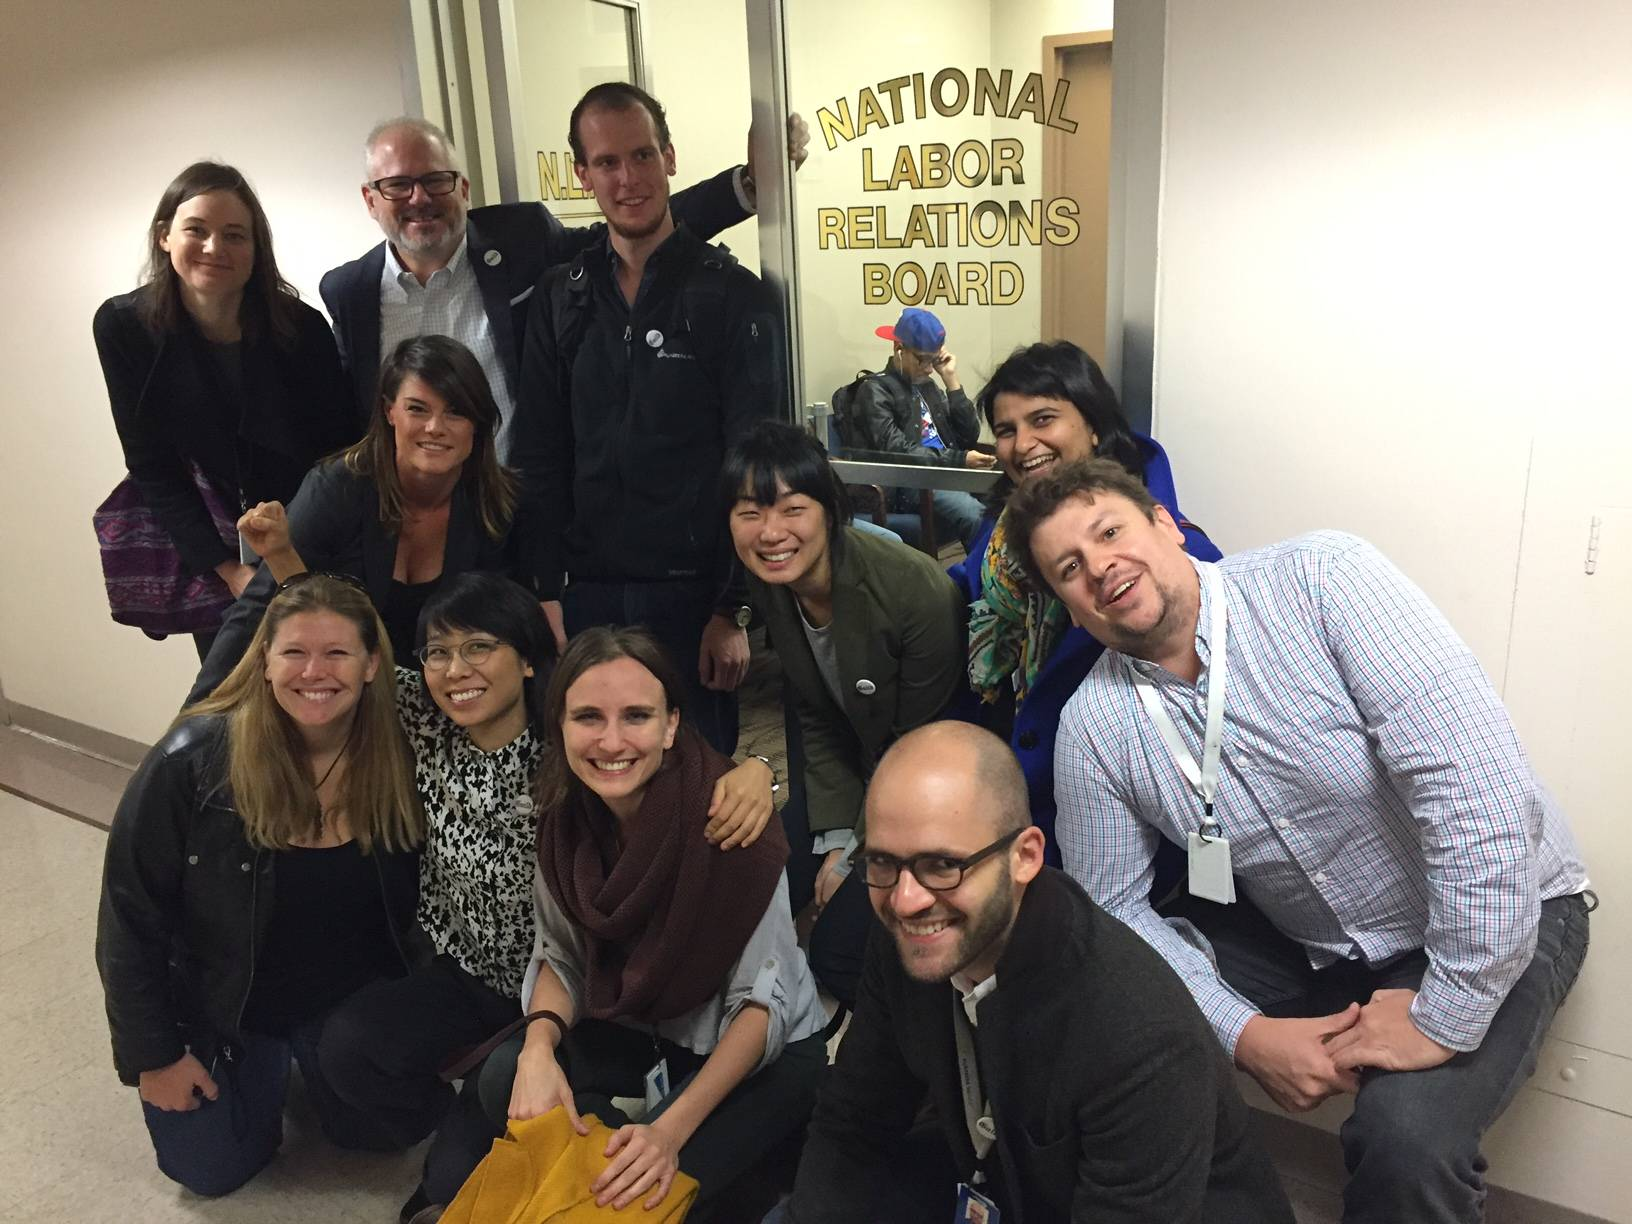 Al Jazeera America digital journalists on Oct. 6, after a tally by the National Labor Relations Board's Manhattan office showed that an overwhelming majority of them voted for representation by The NewsGuild of New York.